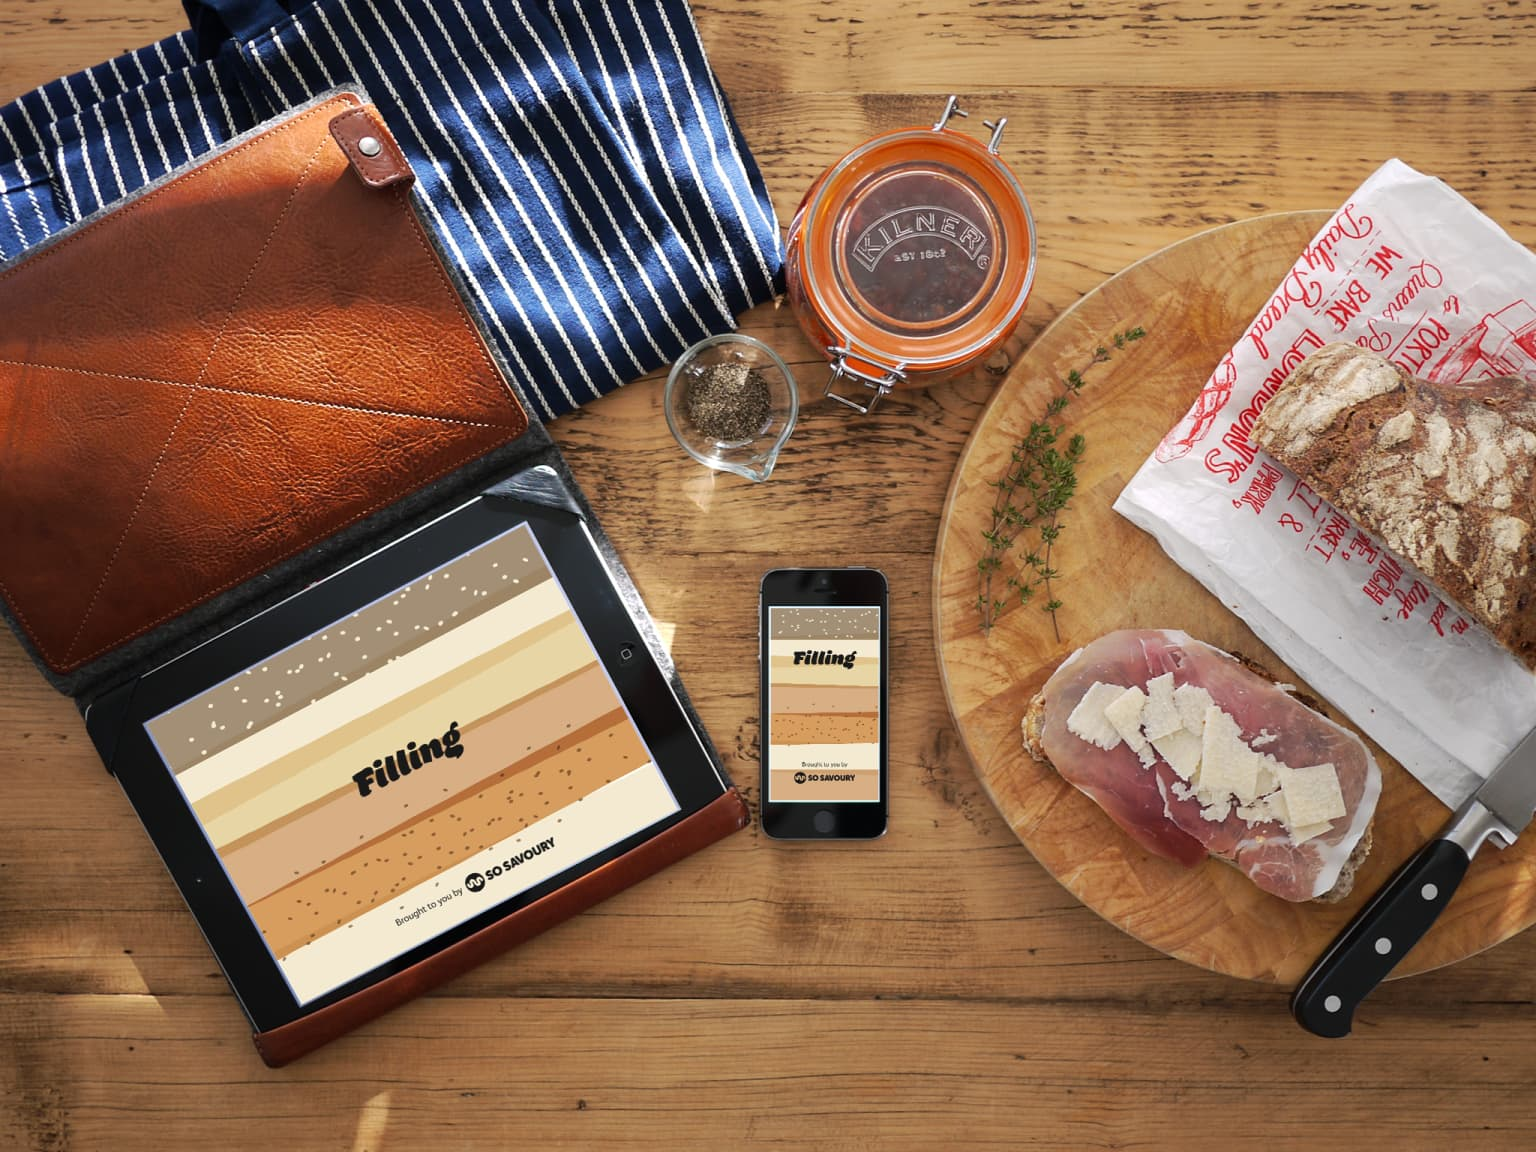 Filling — A Cookbook of Sandwiches